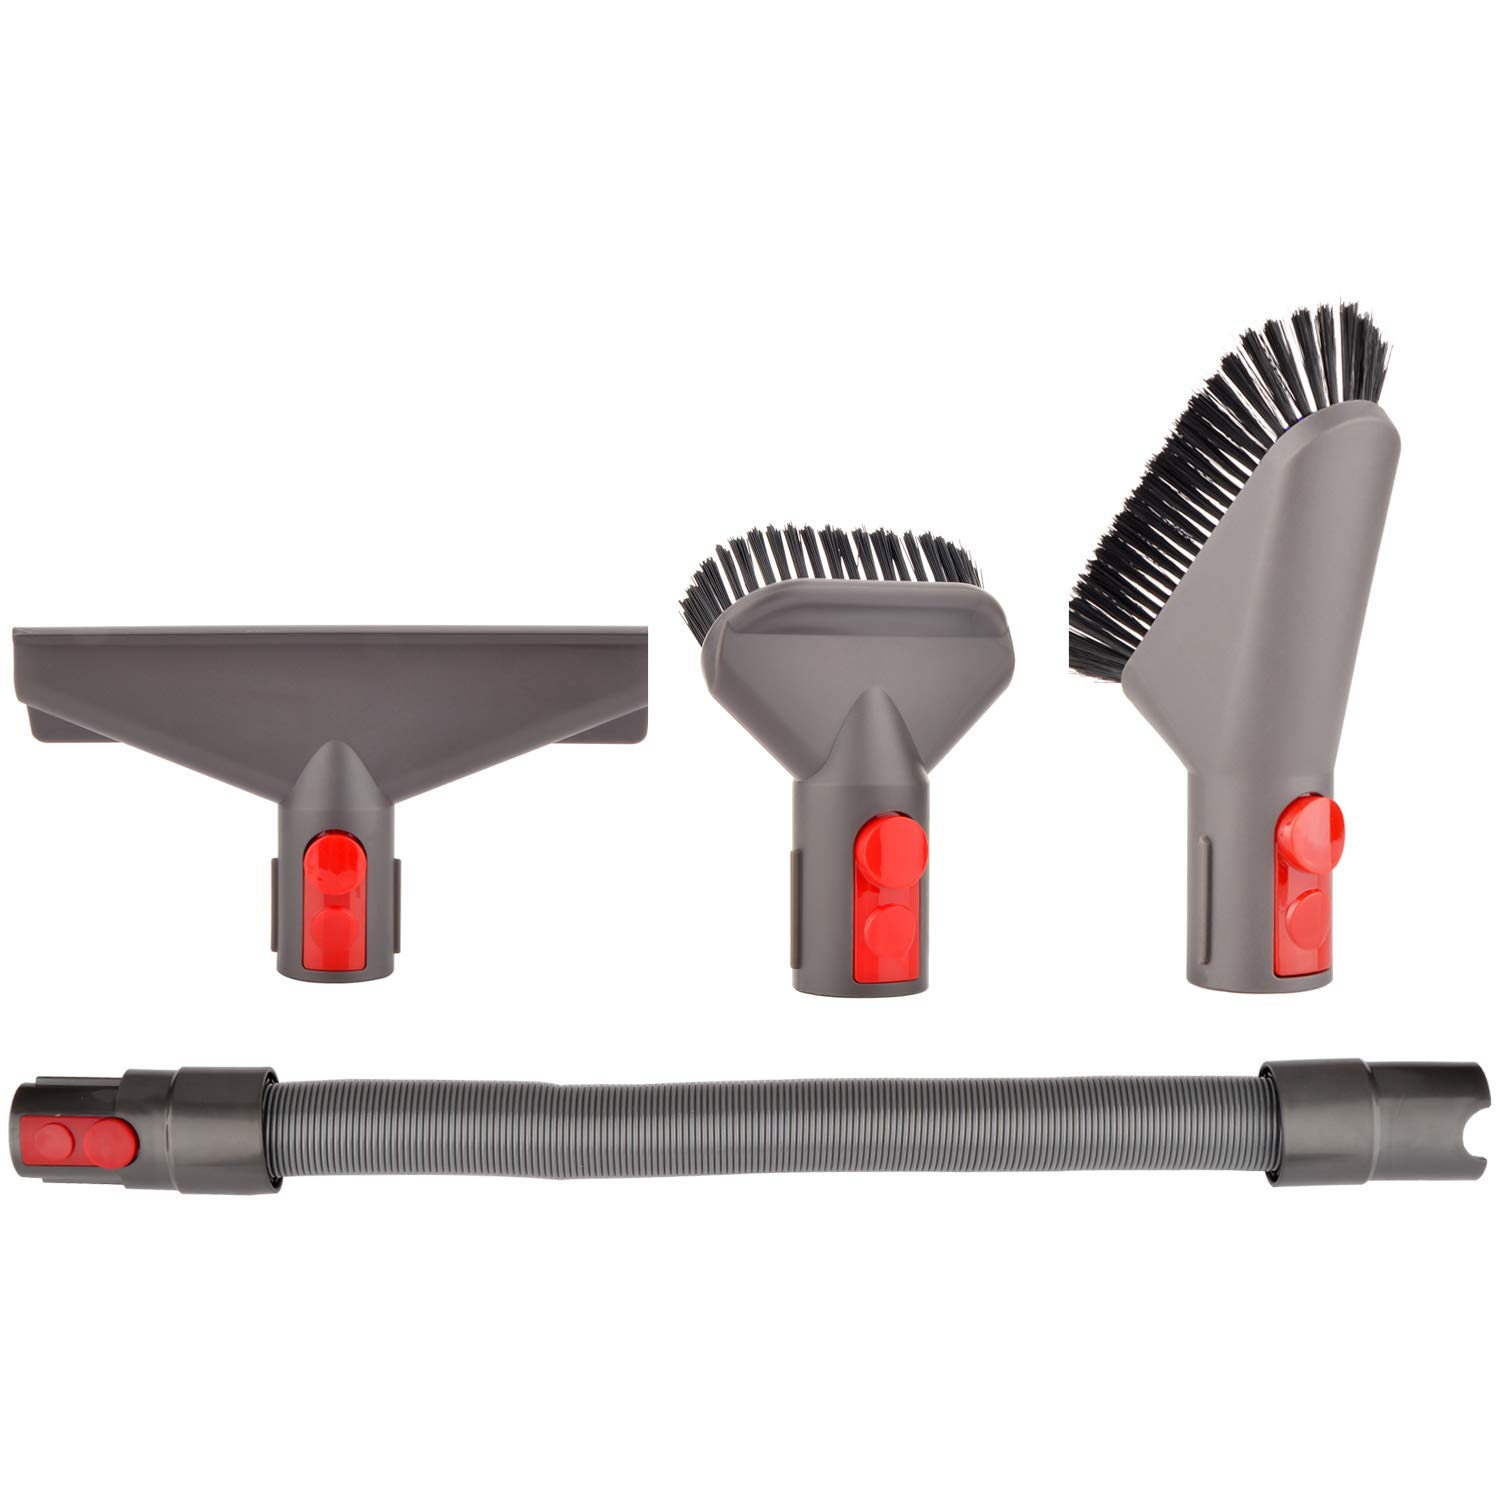 Brush Accessories Compatible With Dyson V8 Absolute Animal V7 Absolute Animal Trigger Motorhead V10 Absolute Animal MotorhBrush Accessories Compatible With Dyson V8 Absolute Animal V7 Absolute Animal Trigger Motorhead V10 Absolute Animal Motorh